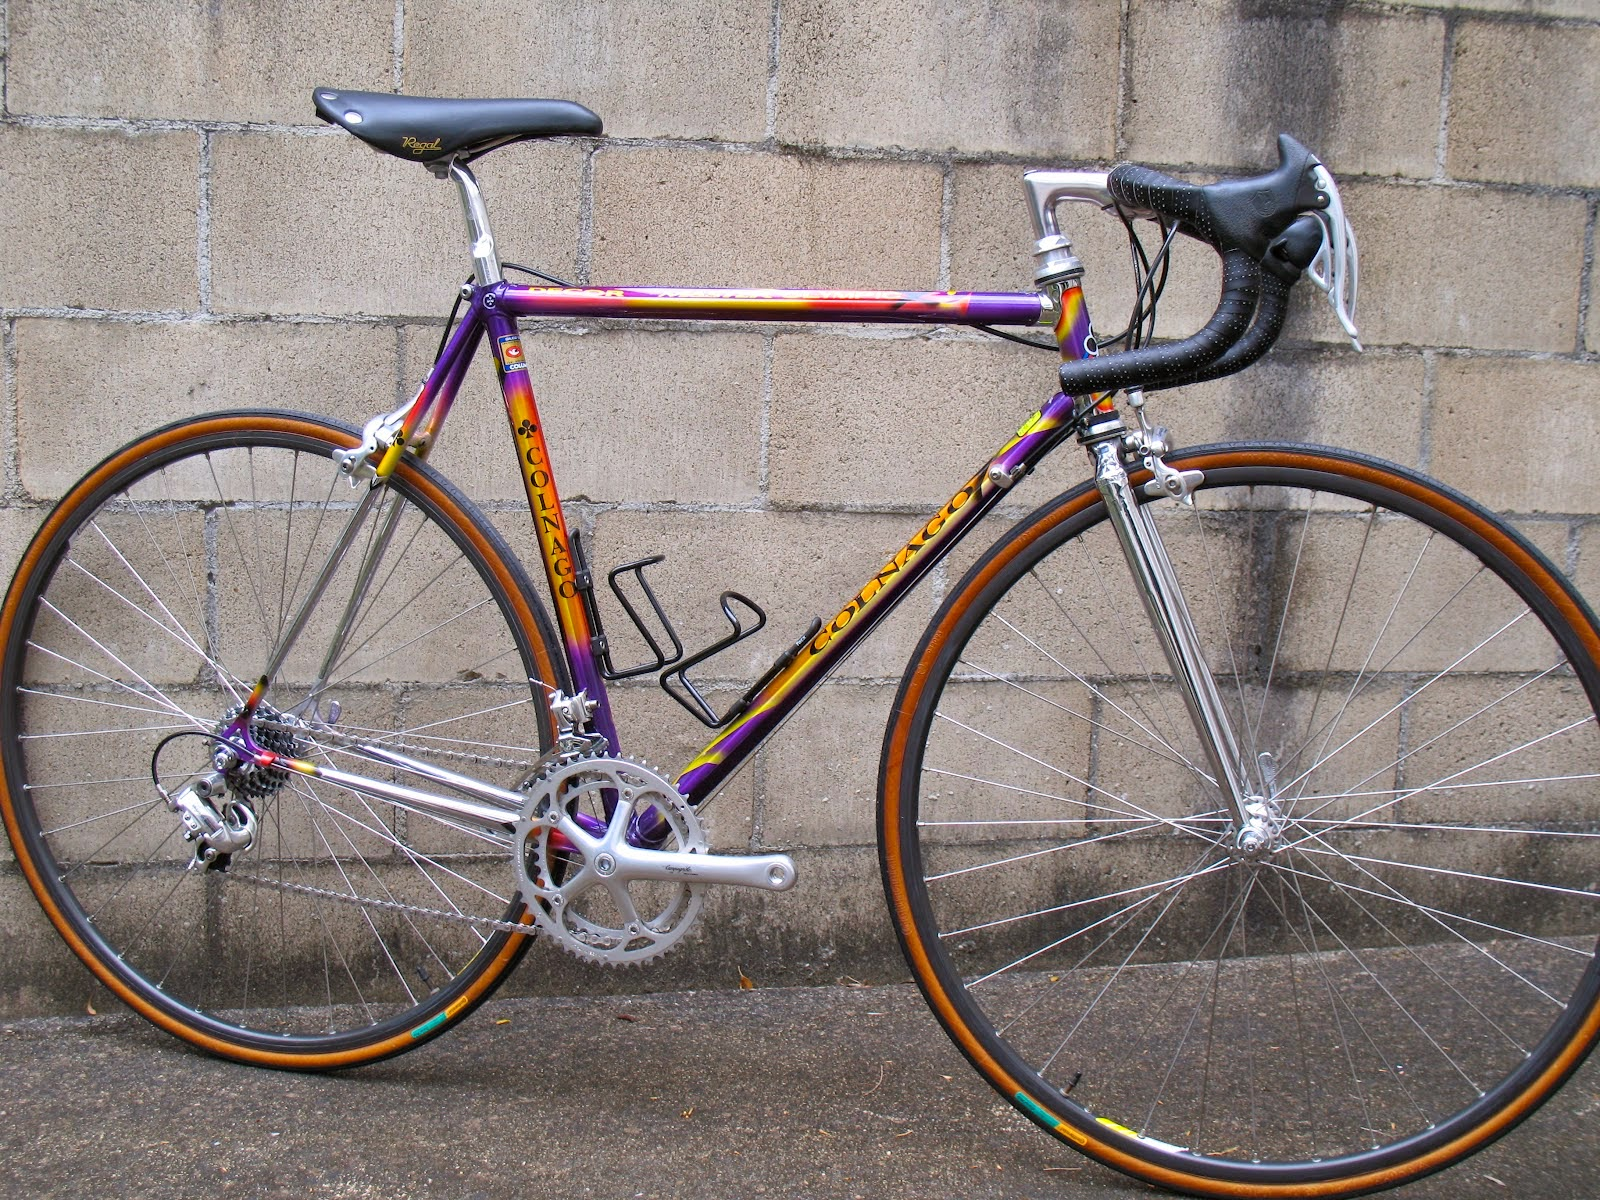 e82fd3597 This one with Campagnolo C Record group and Cobalto brakeset.